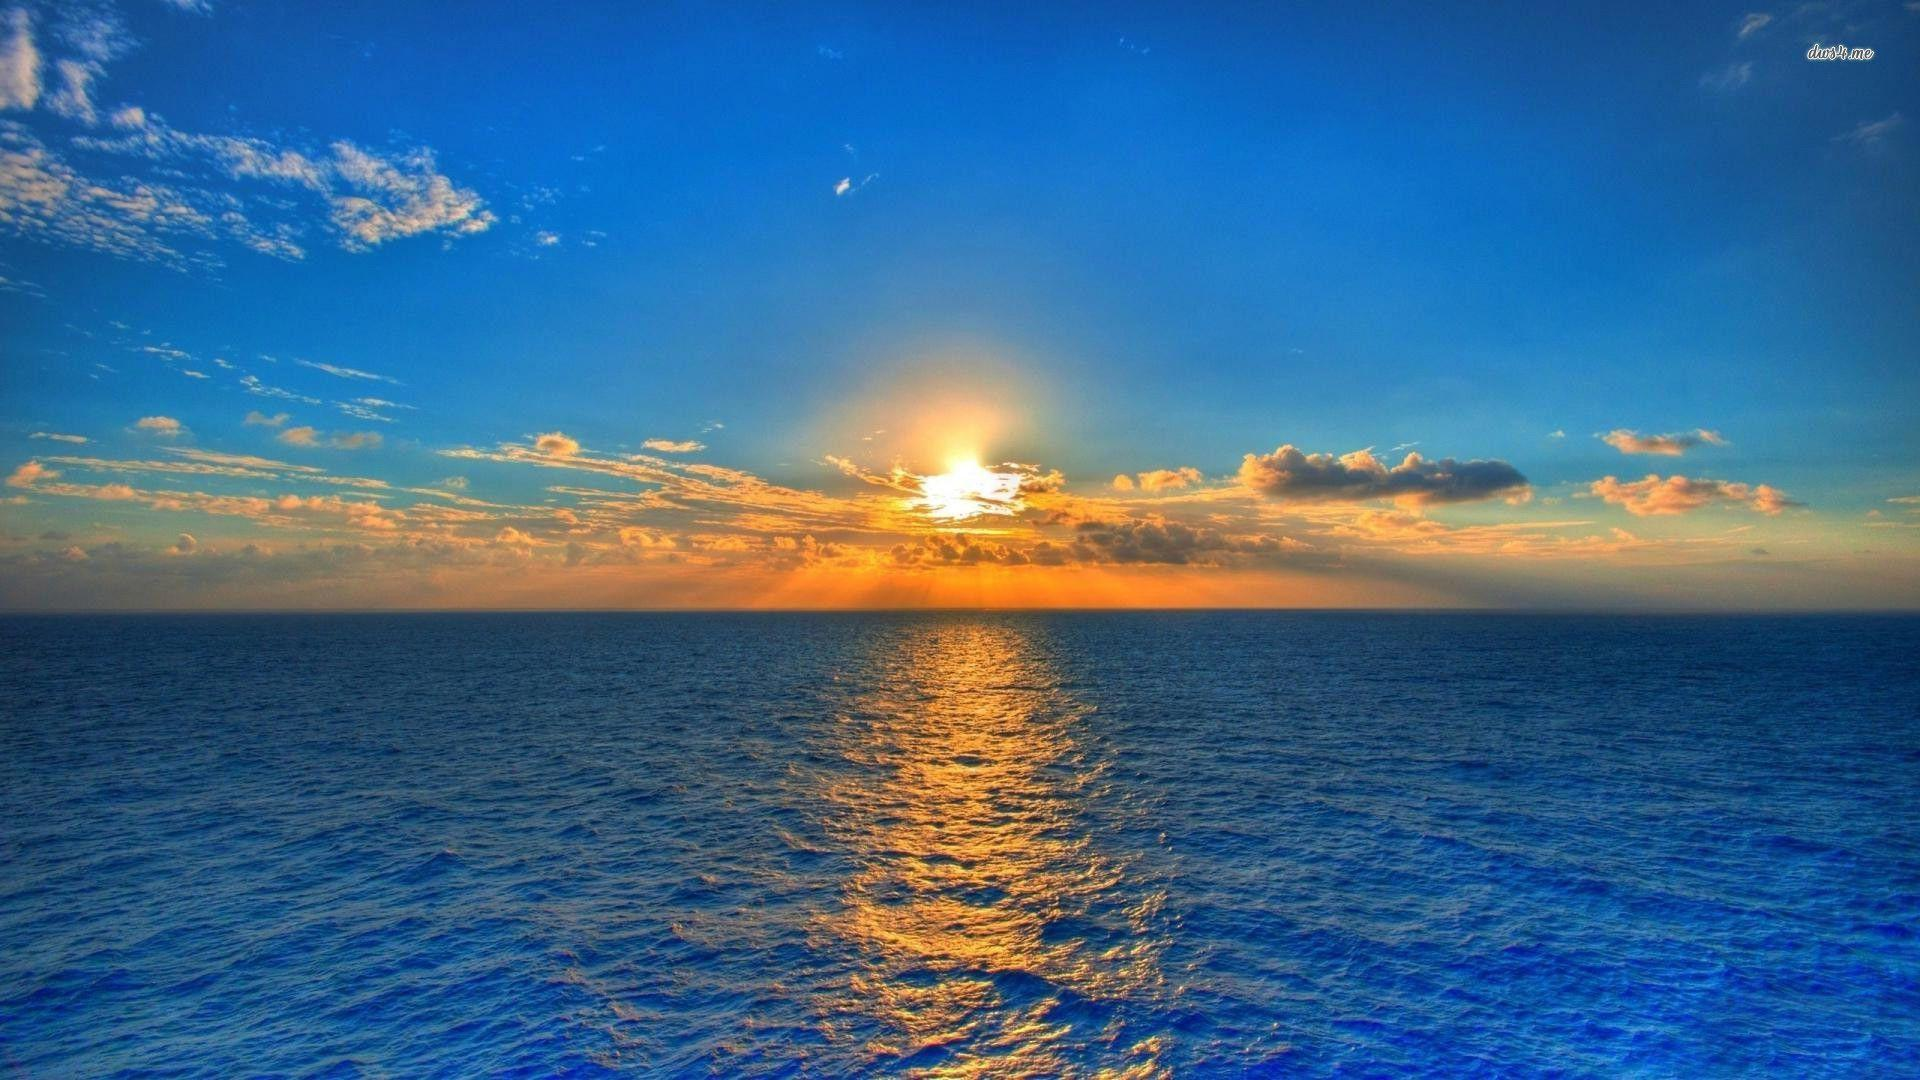 Sunset Backgrounds Pictures - Wallpaper Cave